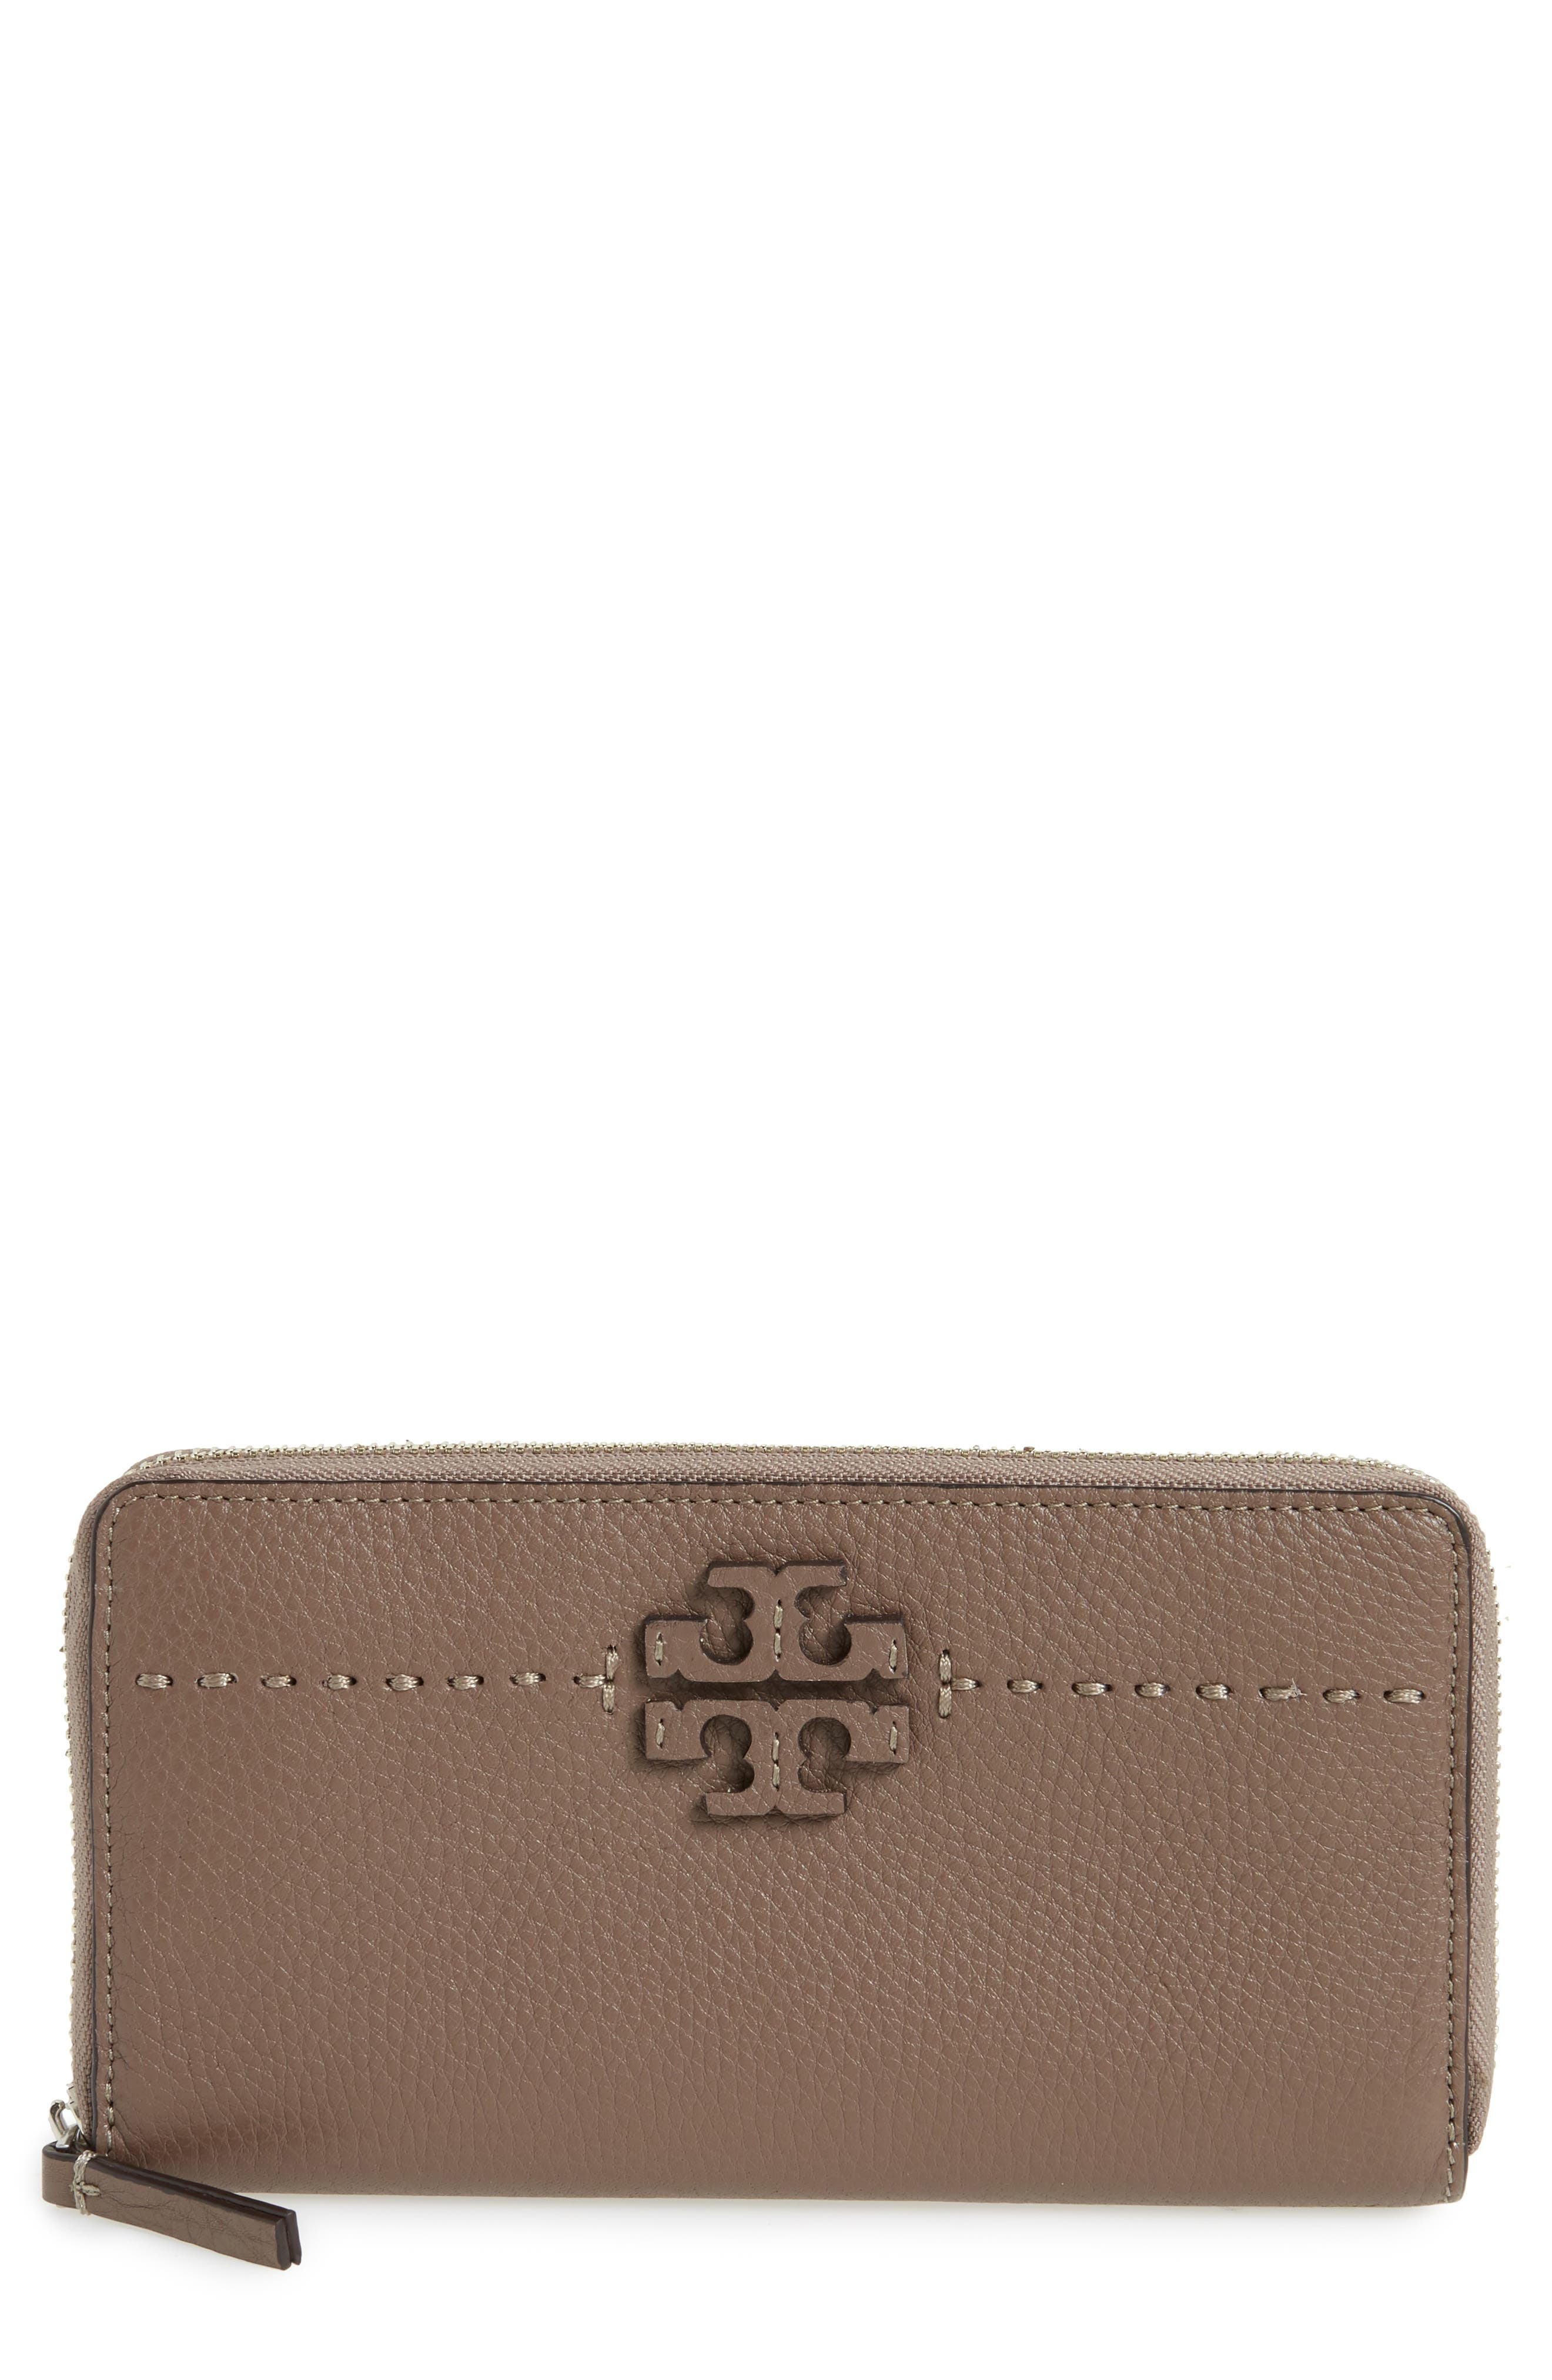 Alternate Image 1 Selected - Tory Burch McGraw Leather Continental Zip Wallet